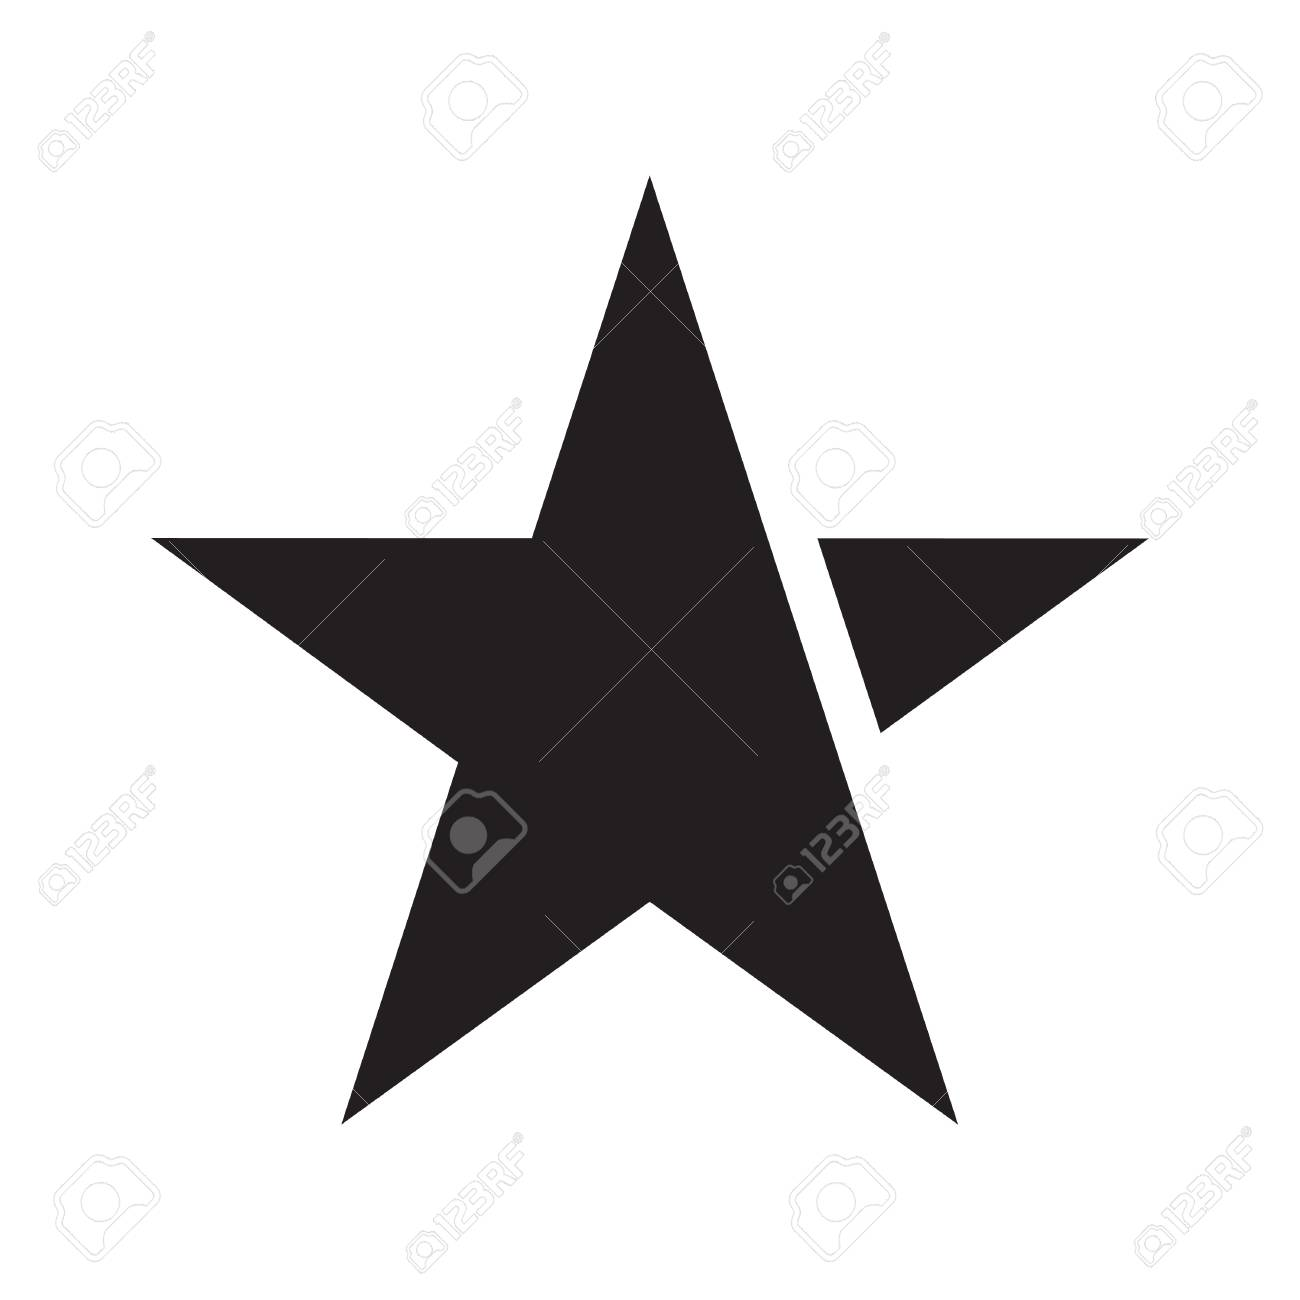 star vector icon royalty free cliparts vectors and stock rh 123rf com star vector file star vector free download